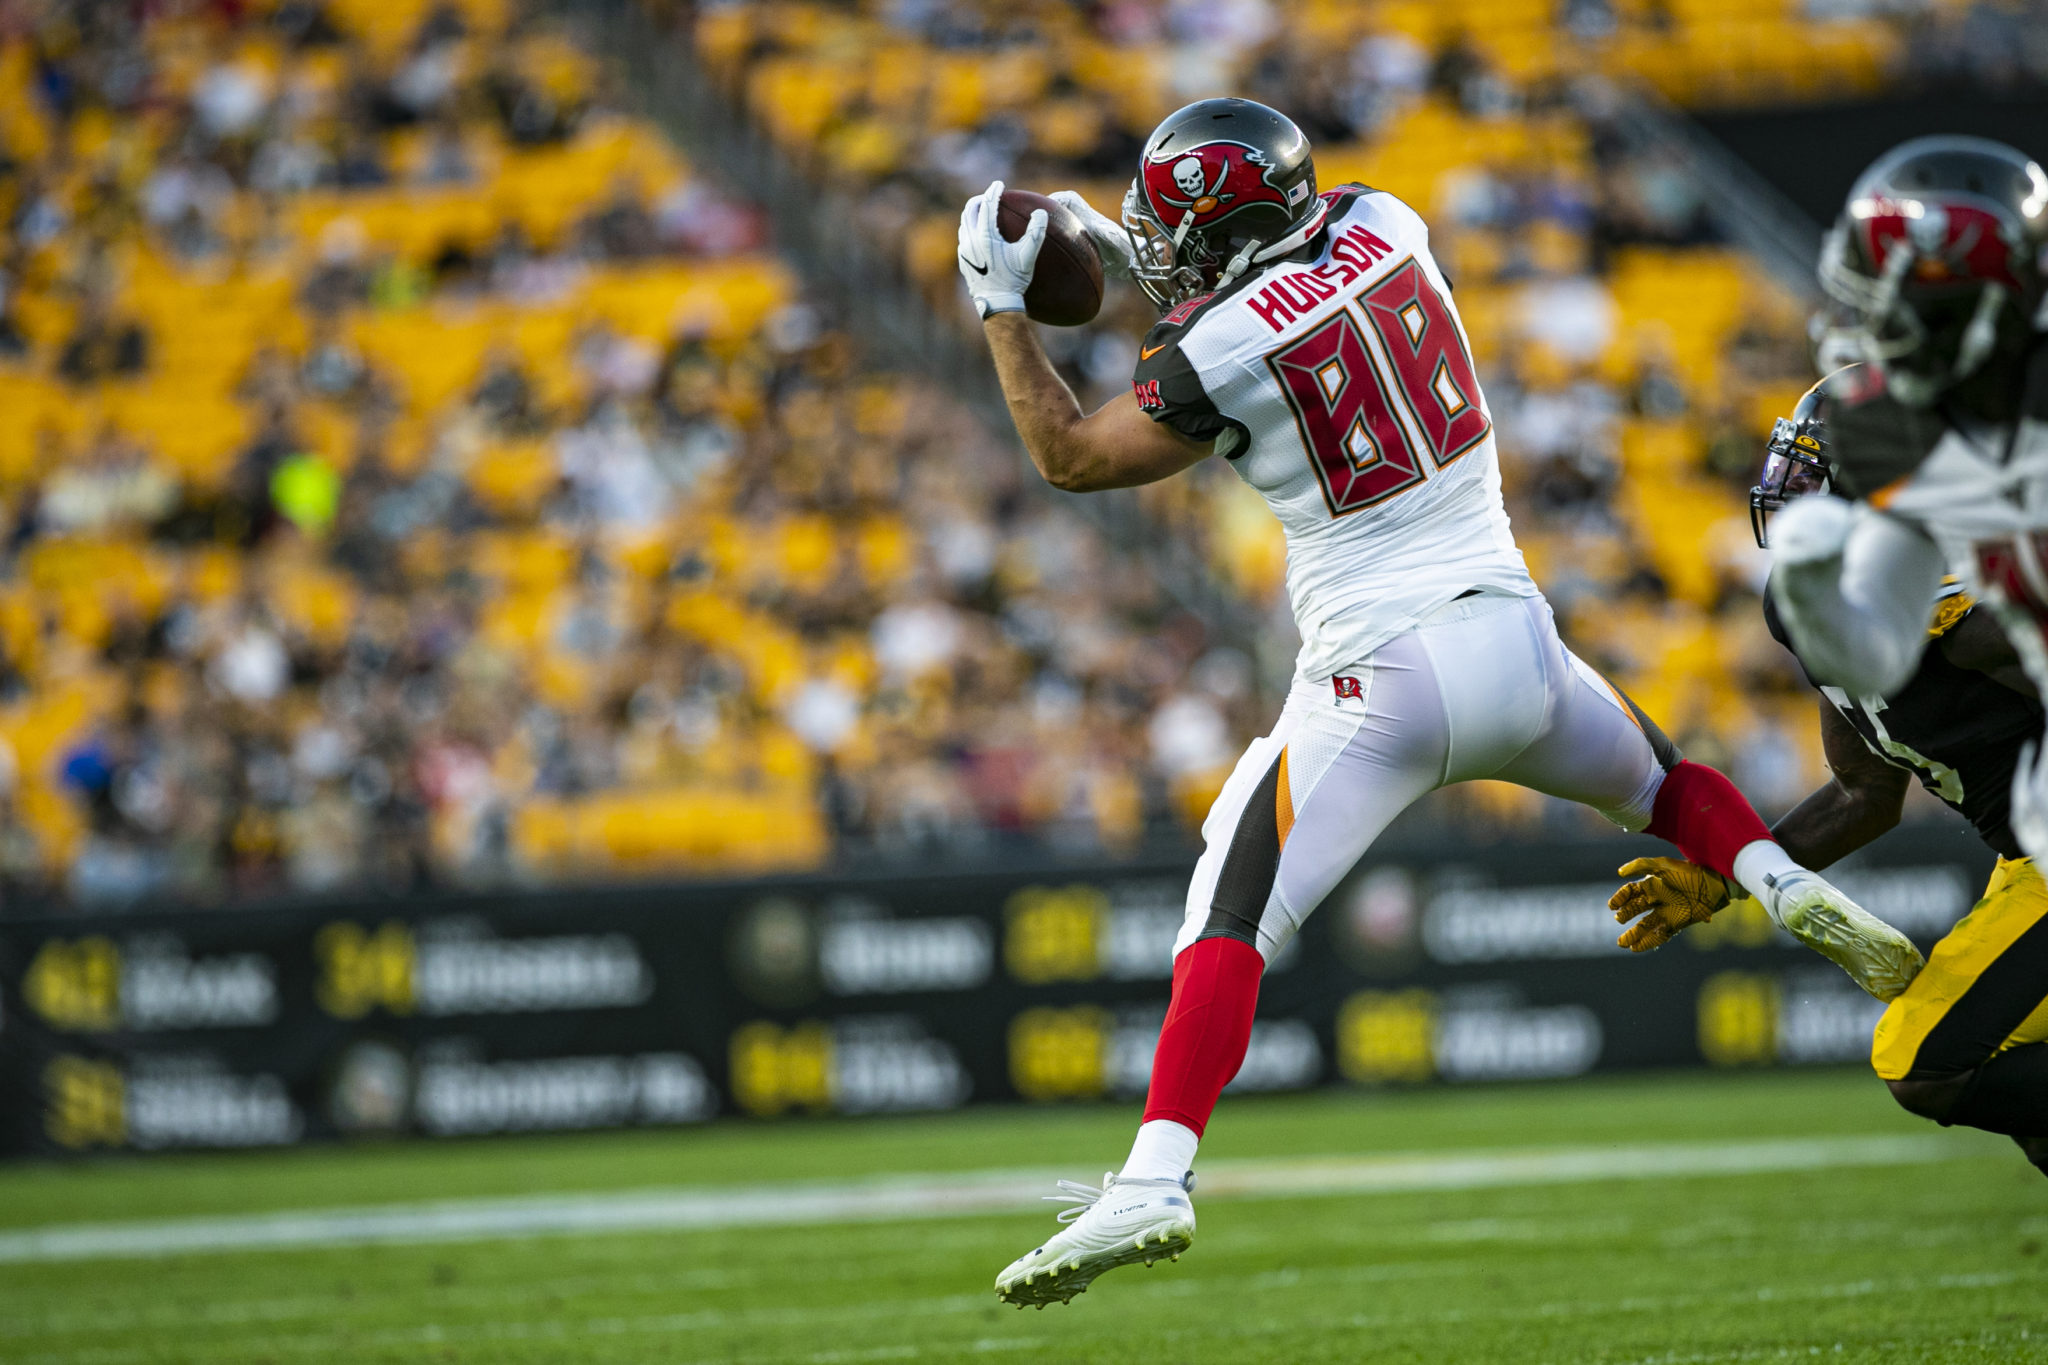 Tampa Bay Buccaneers tight end Tanner Hudson (88) catches a pass during the NFL football game between the Tampa Bay Bucaneers and the Pittsburgh Steelers